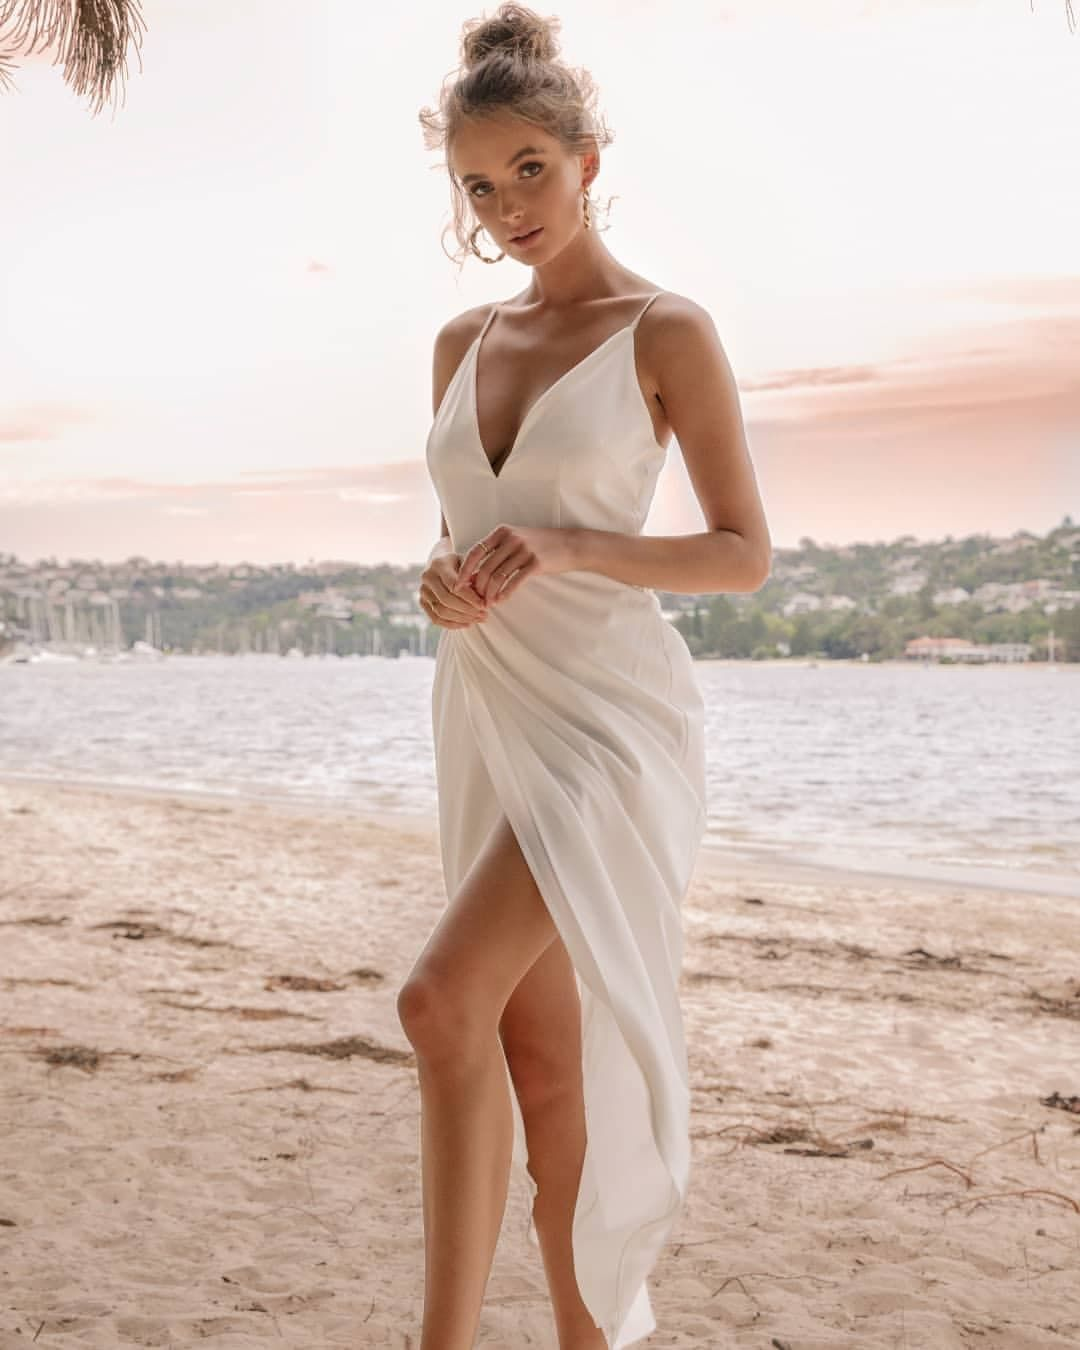 Elopement Wedding Dress Casual Simple Intimate Wedding Dress Romantic For The Love Of Stationery In 2020 Casual Beach Wedding Dress Simple Wedding Dress Casual Casual Wedding Dress